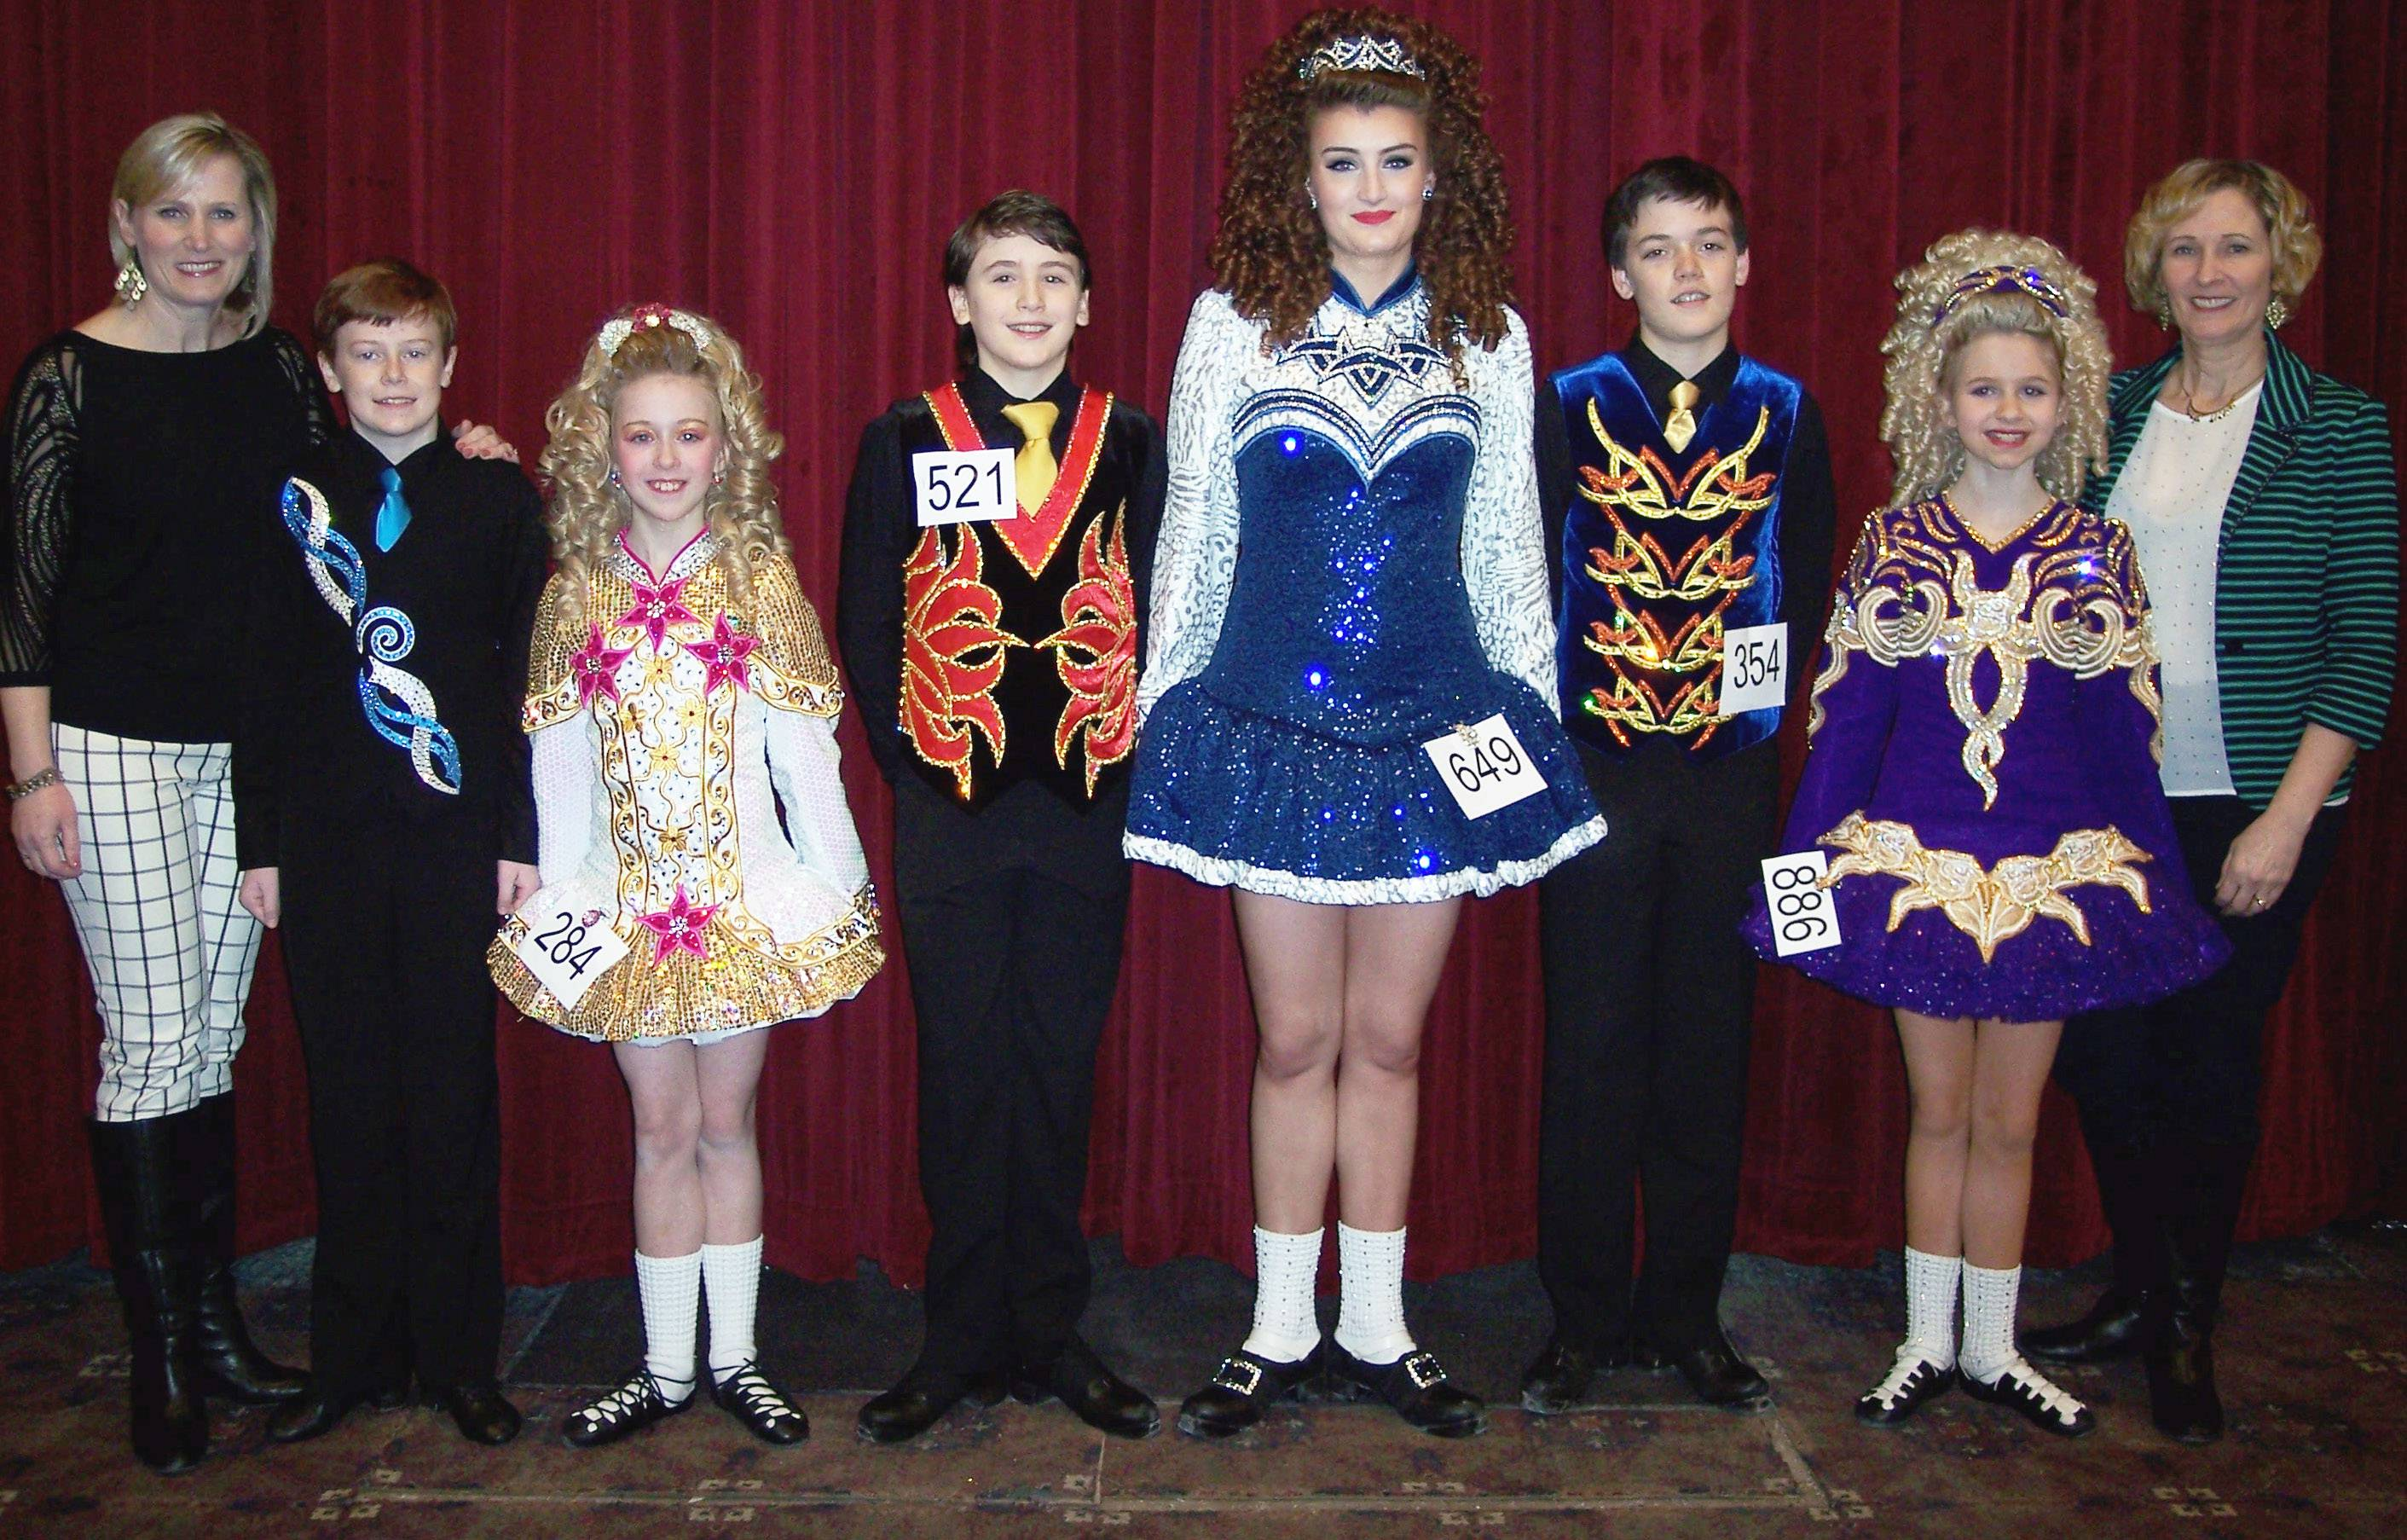 The Dillon-Gavin School of Irish Dance teachers and their six dancers representing North America are, from left: Bernadette Gavin; Patrick Holbrook, u15, Niles; Sarah Conneelly, u12, Arlington Heights; Kristjan Gudmundson, u14, Niles; Lindsey Kelly u21, Niles; Ronan Donahue u15, Park Ridge; Claudia Morrison, u12, Des Plaines; and teacher Maureen Yawger.Dawn Morrison